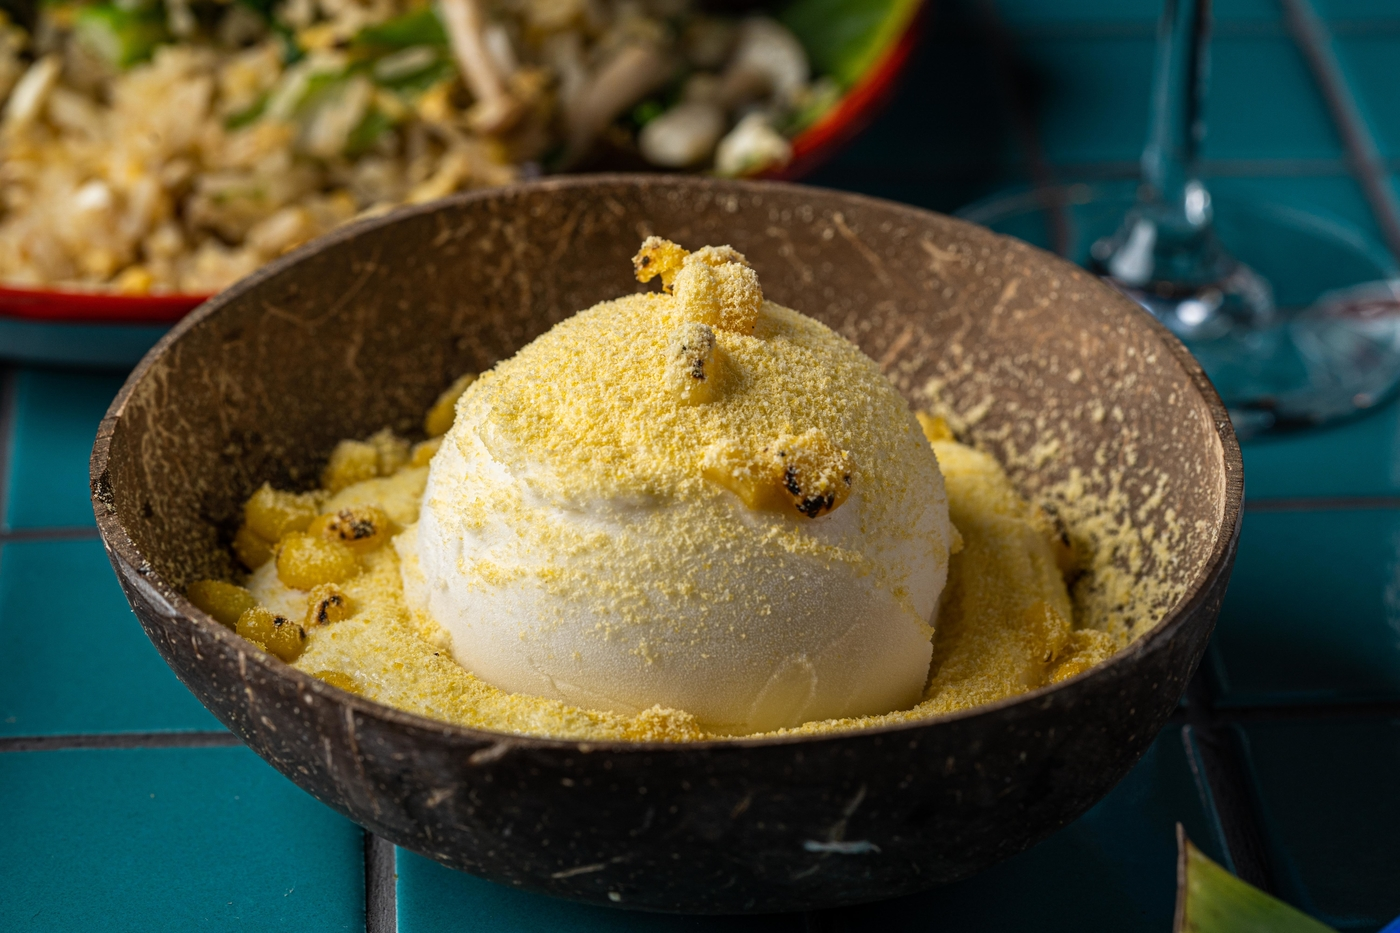 Sip Song coconut and corn ice cream